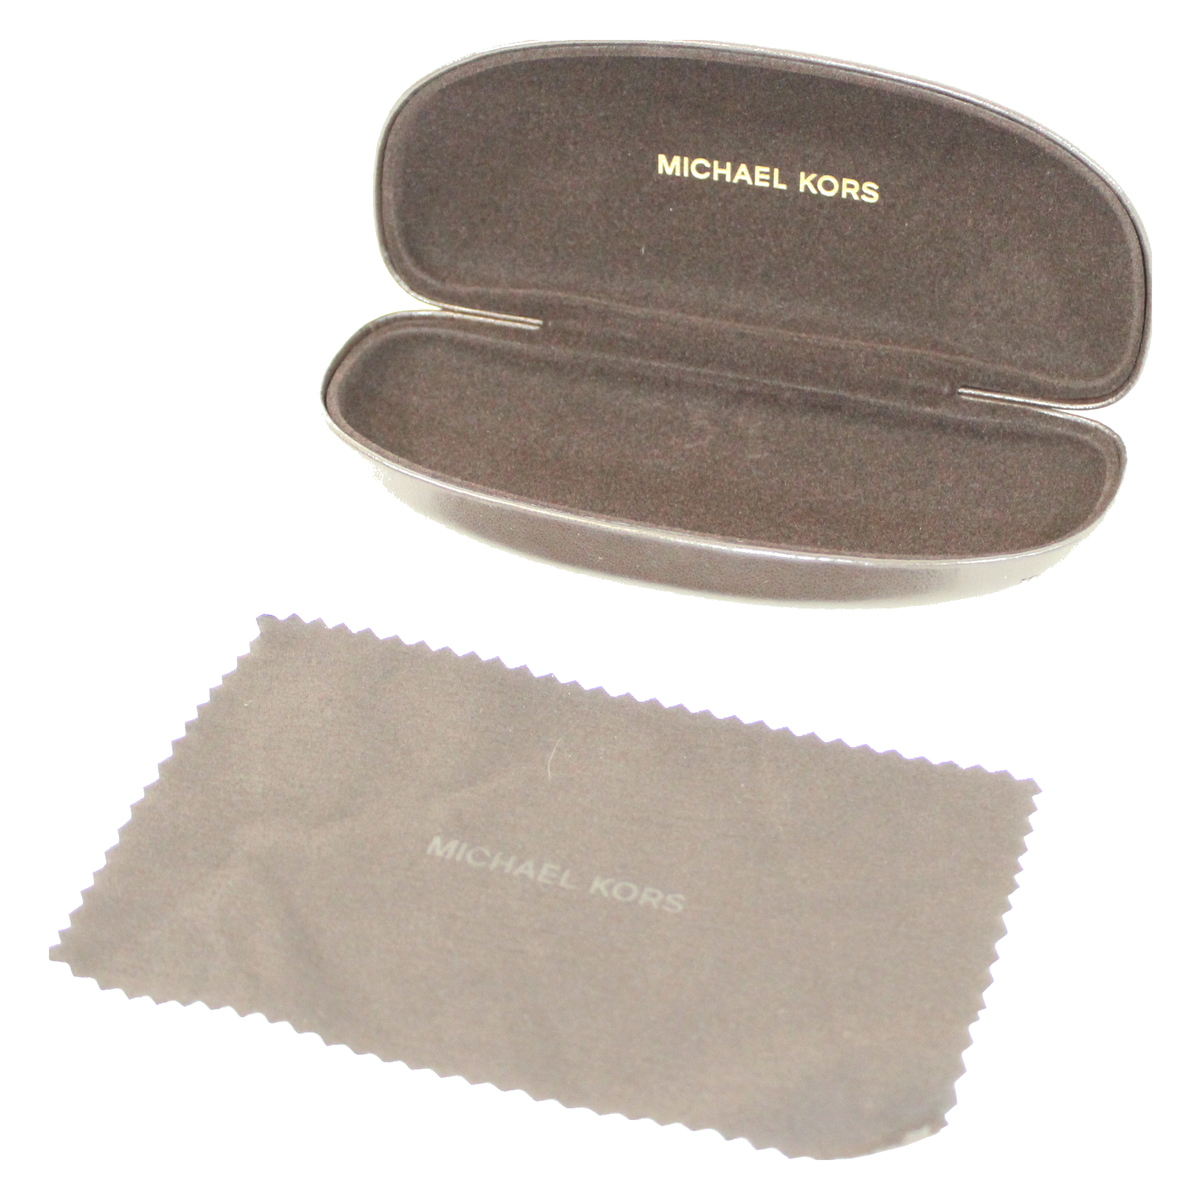 2787cef72a3c Details about Michael Kors hard sunglasses case clamshell box new authentic  brown with cloth